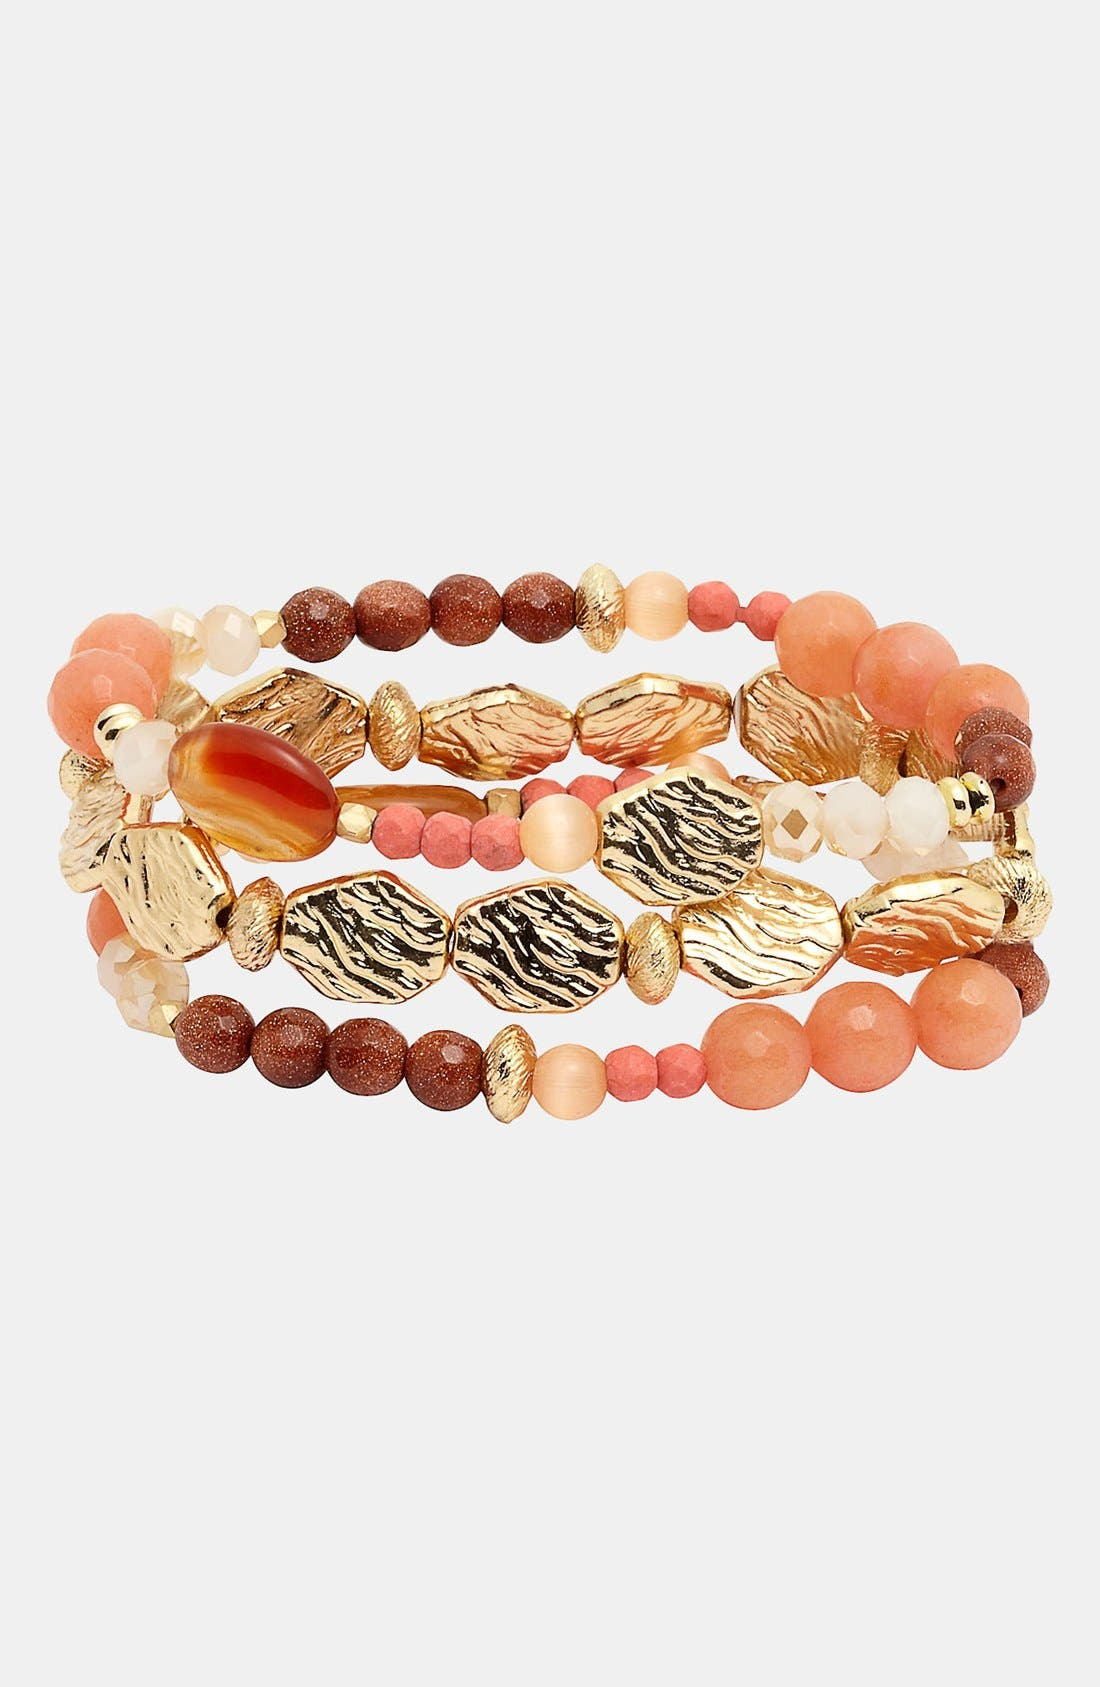 Alternate Image 1 Selected - Nordstrom 'Pebbles' Beaded Stretch Bracelets (Set of 3)